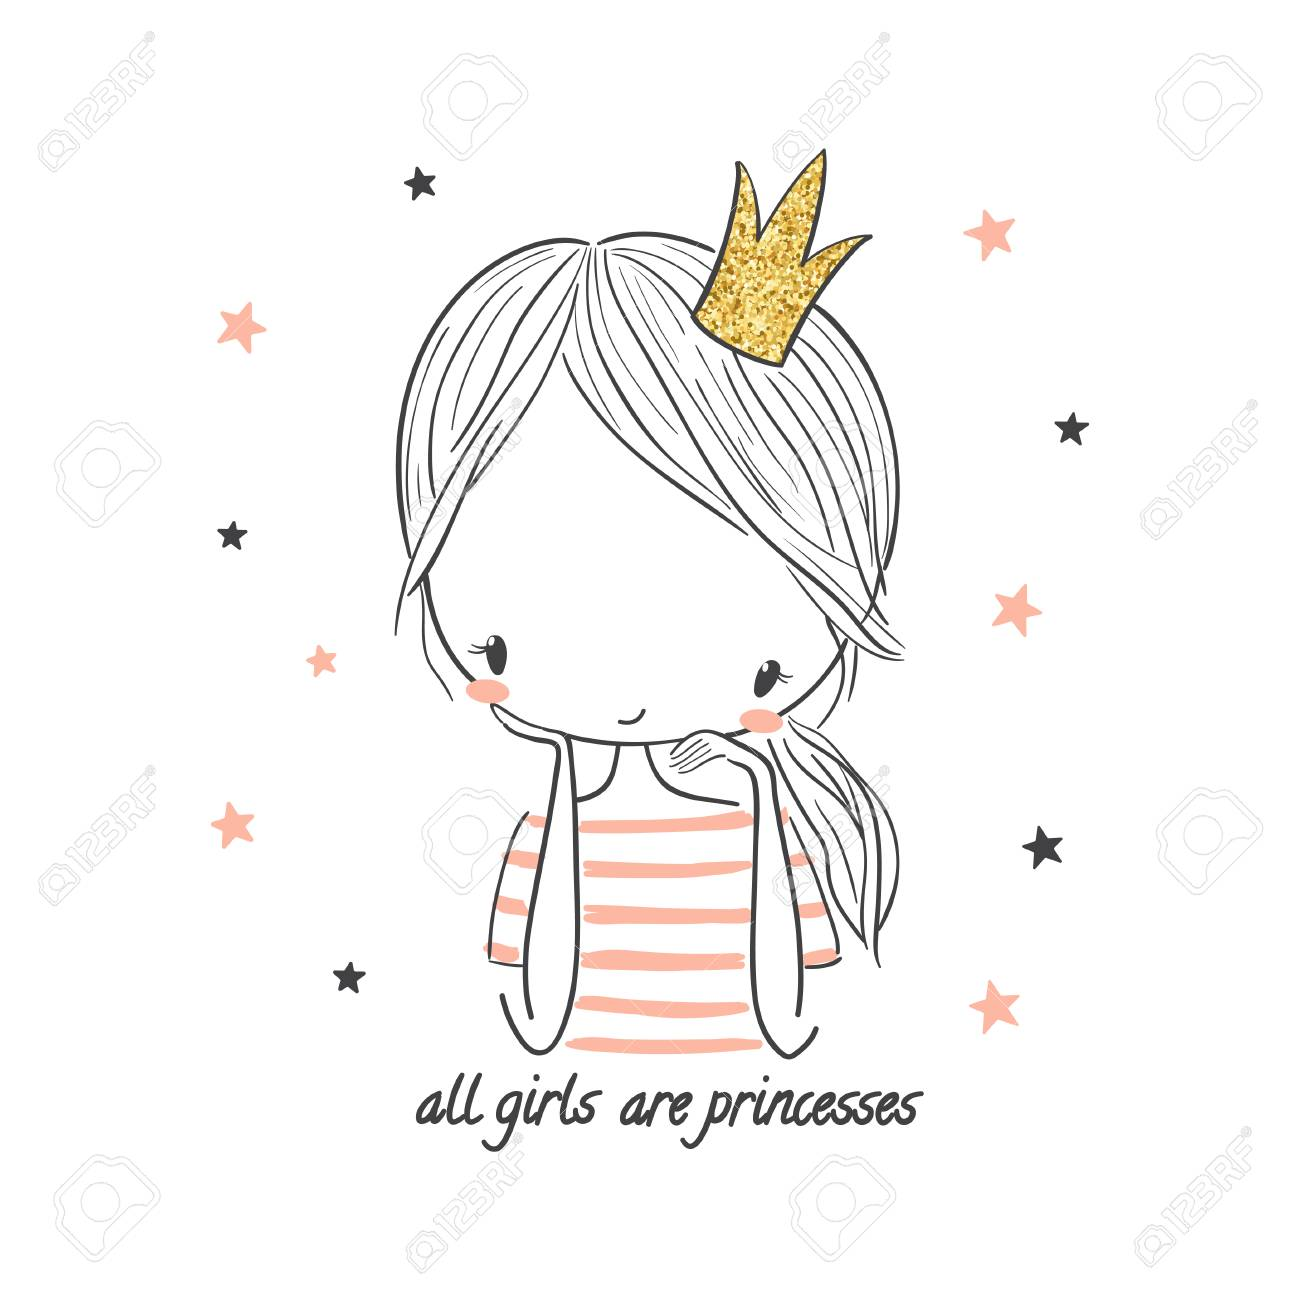 Cute Princess Girl Fashion Illustration For Kids Clothing Use Royalty Free Cliparts Vectors And Stock Illustration Image 101897268